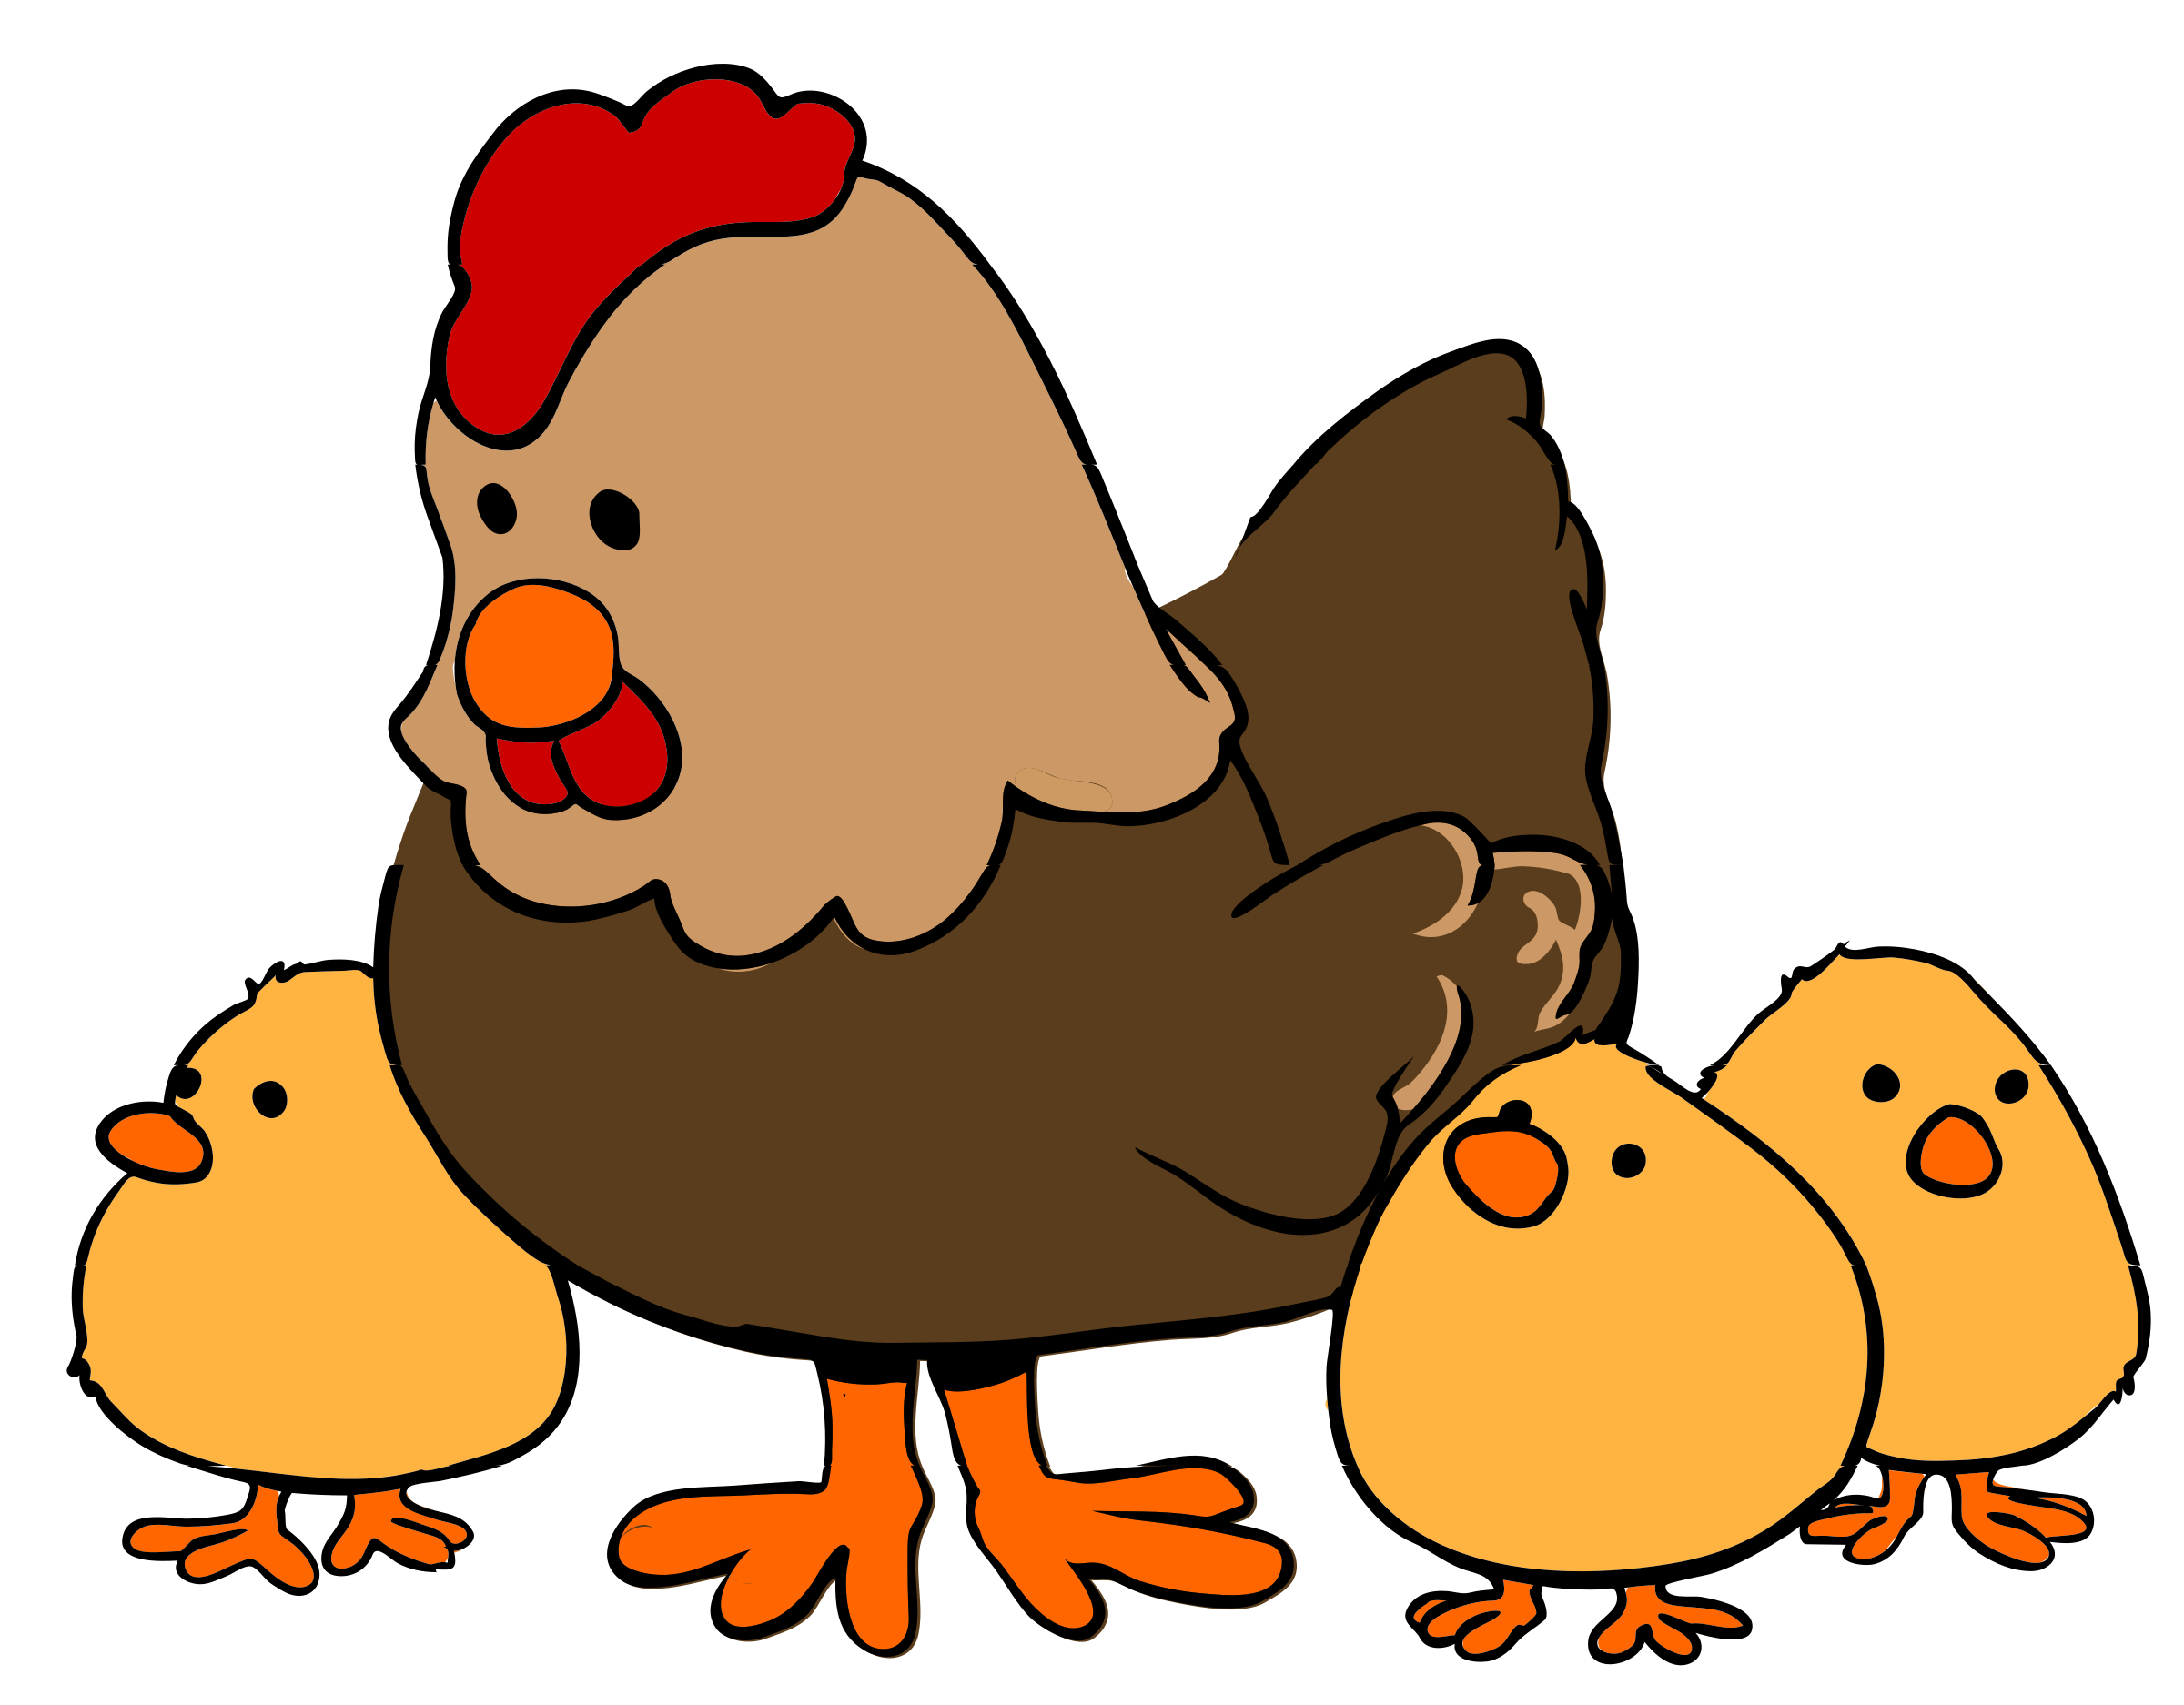 And chicks cartoon style. Hen clipart